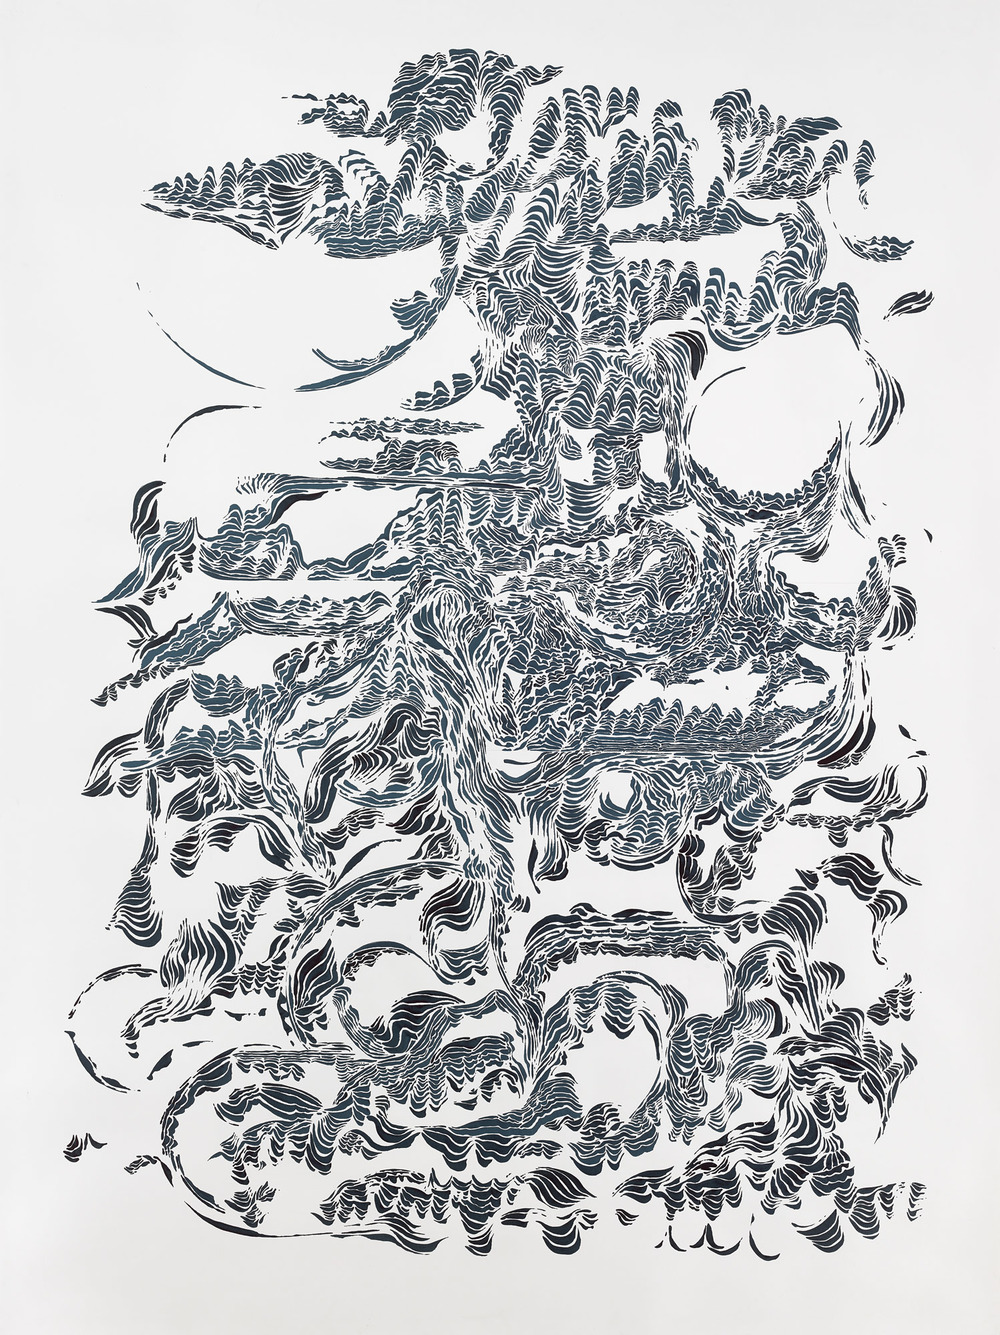 BK P11160 / untitled / ink on paper / 200x150cm / 2015